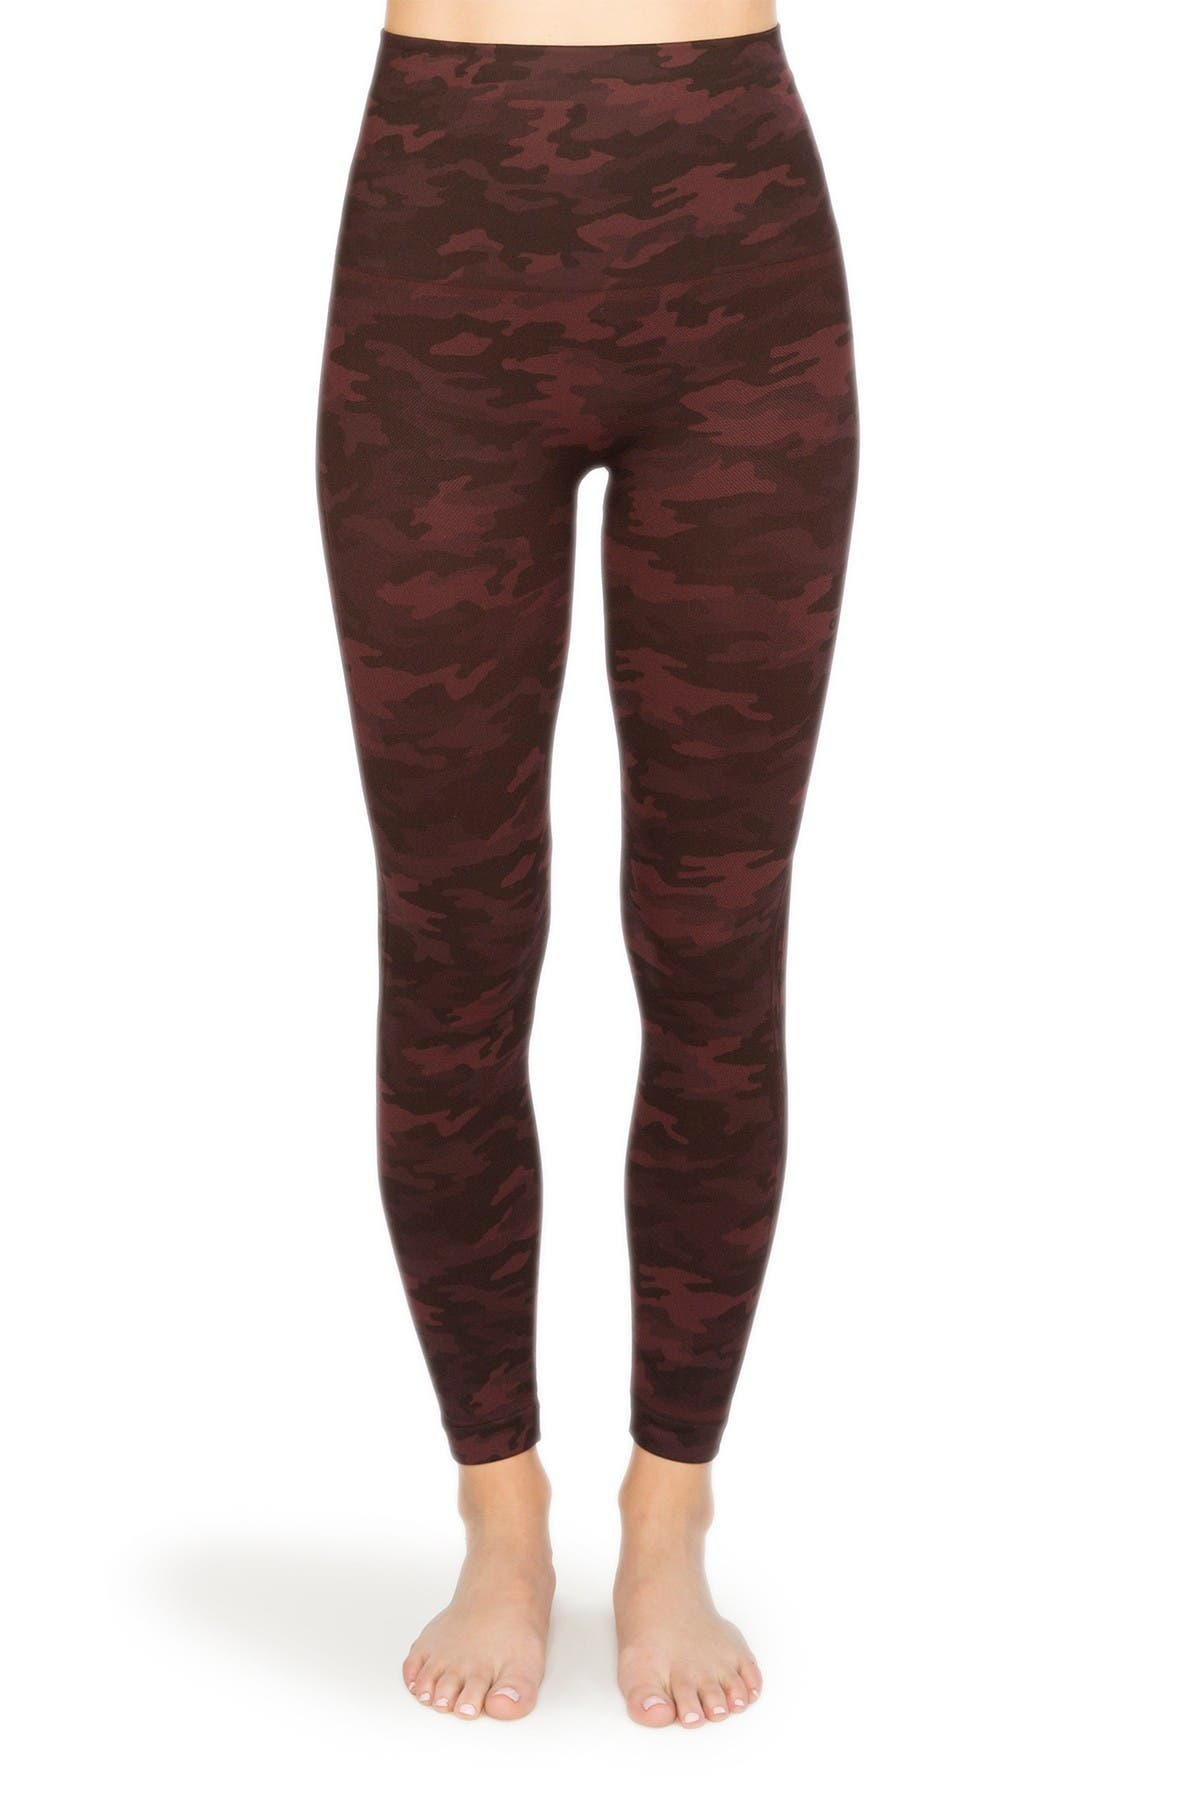 Image of SPANX Print Seamless Leggings